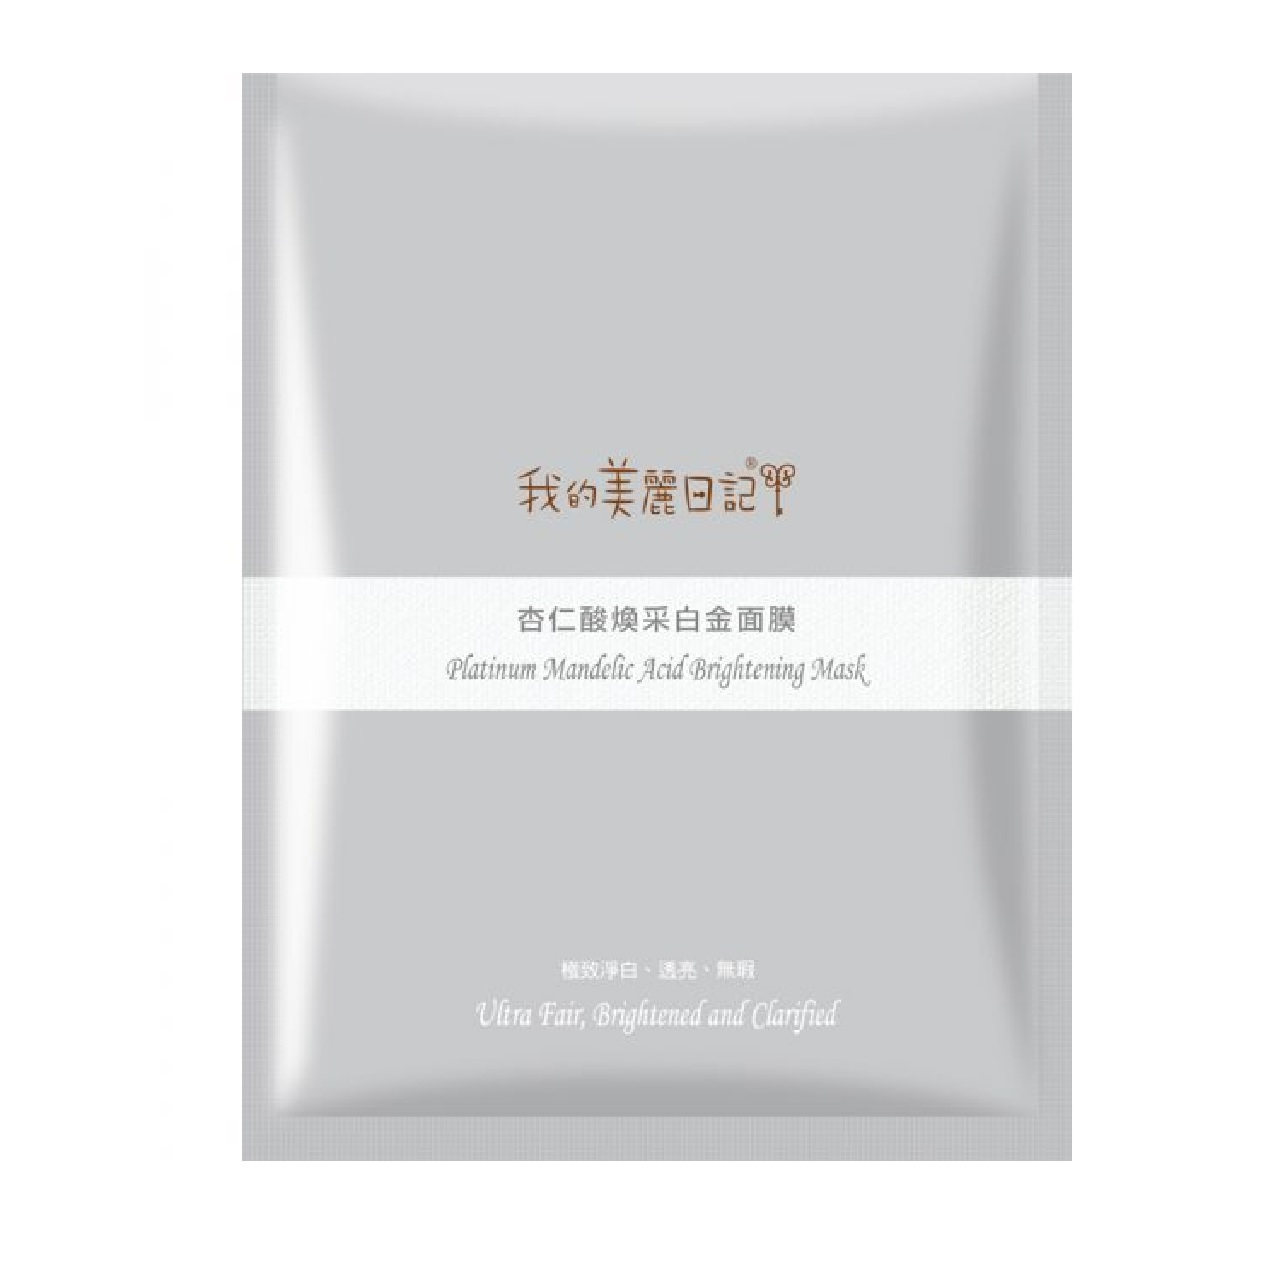 mat-na-my-beauty-diary-platinum-mandelic-acid-brightening-mask-review-thanh-phan-gia-cong-dung-40